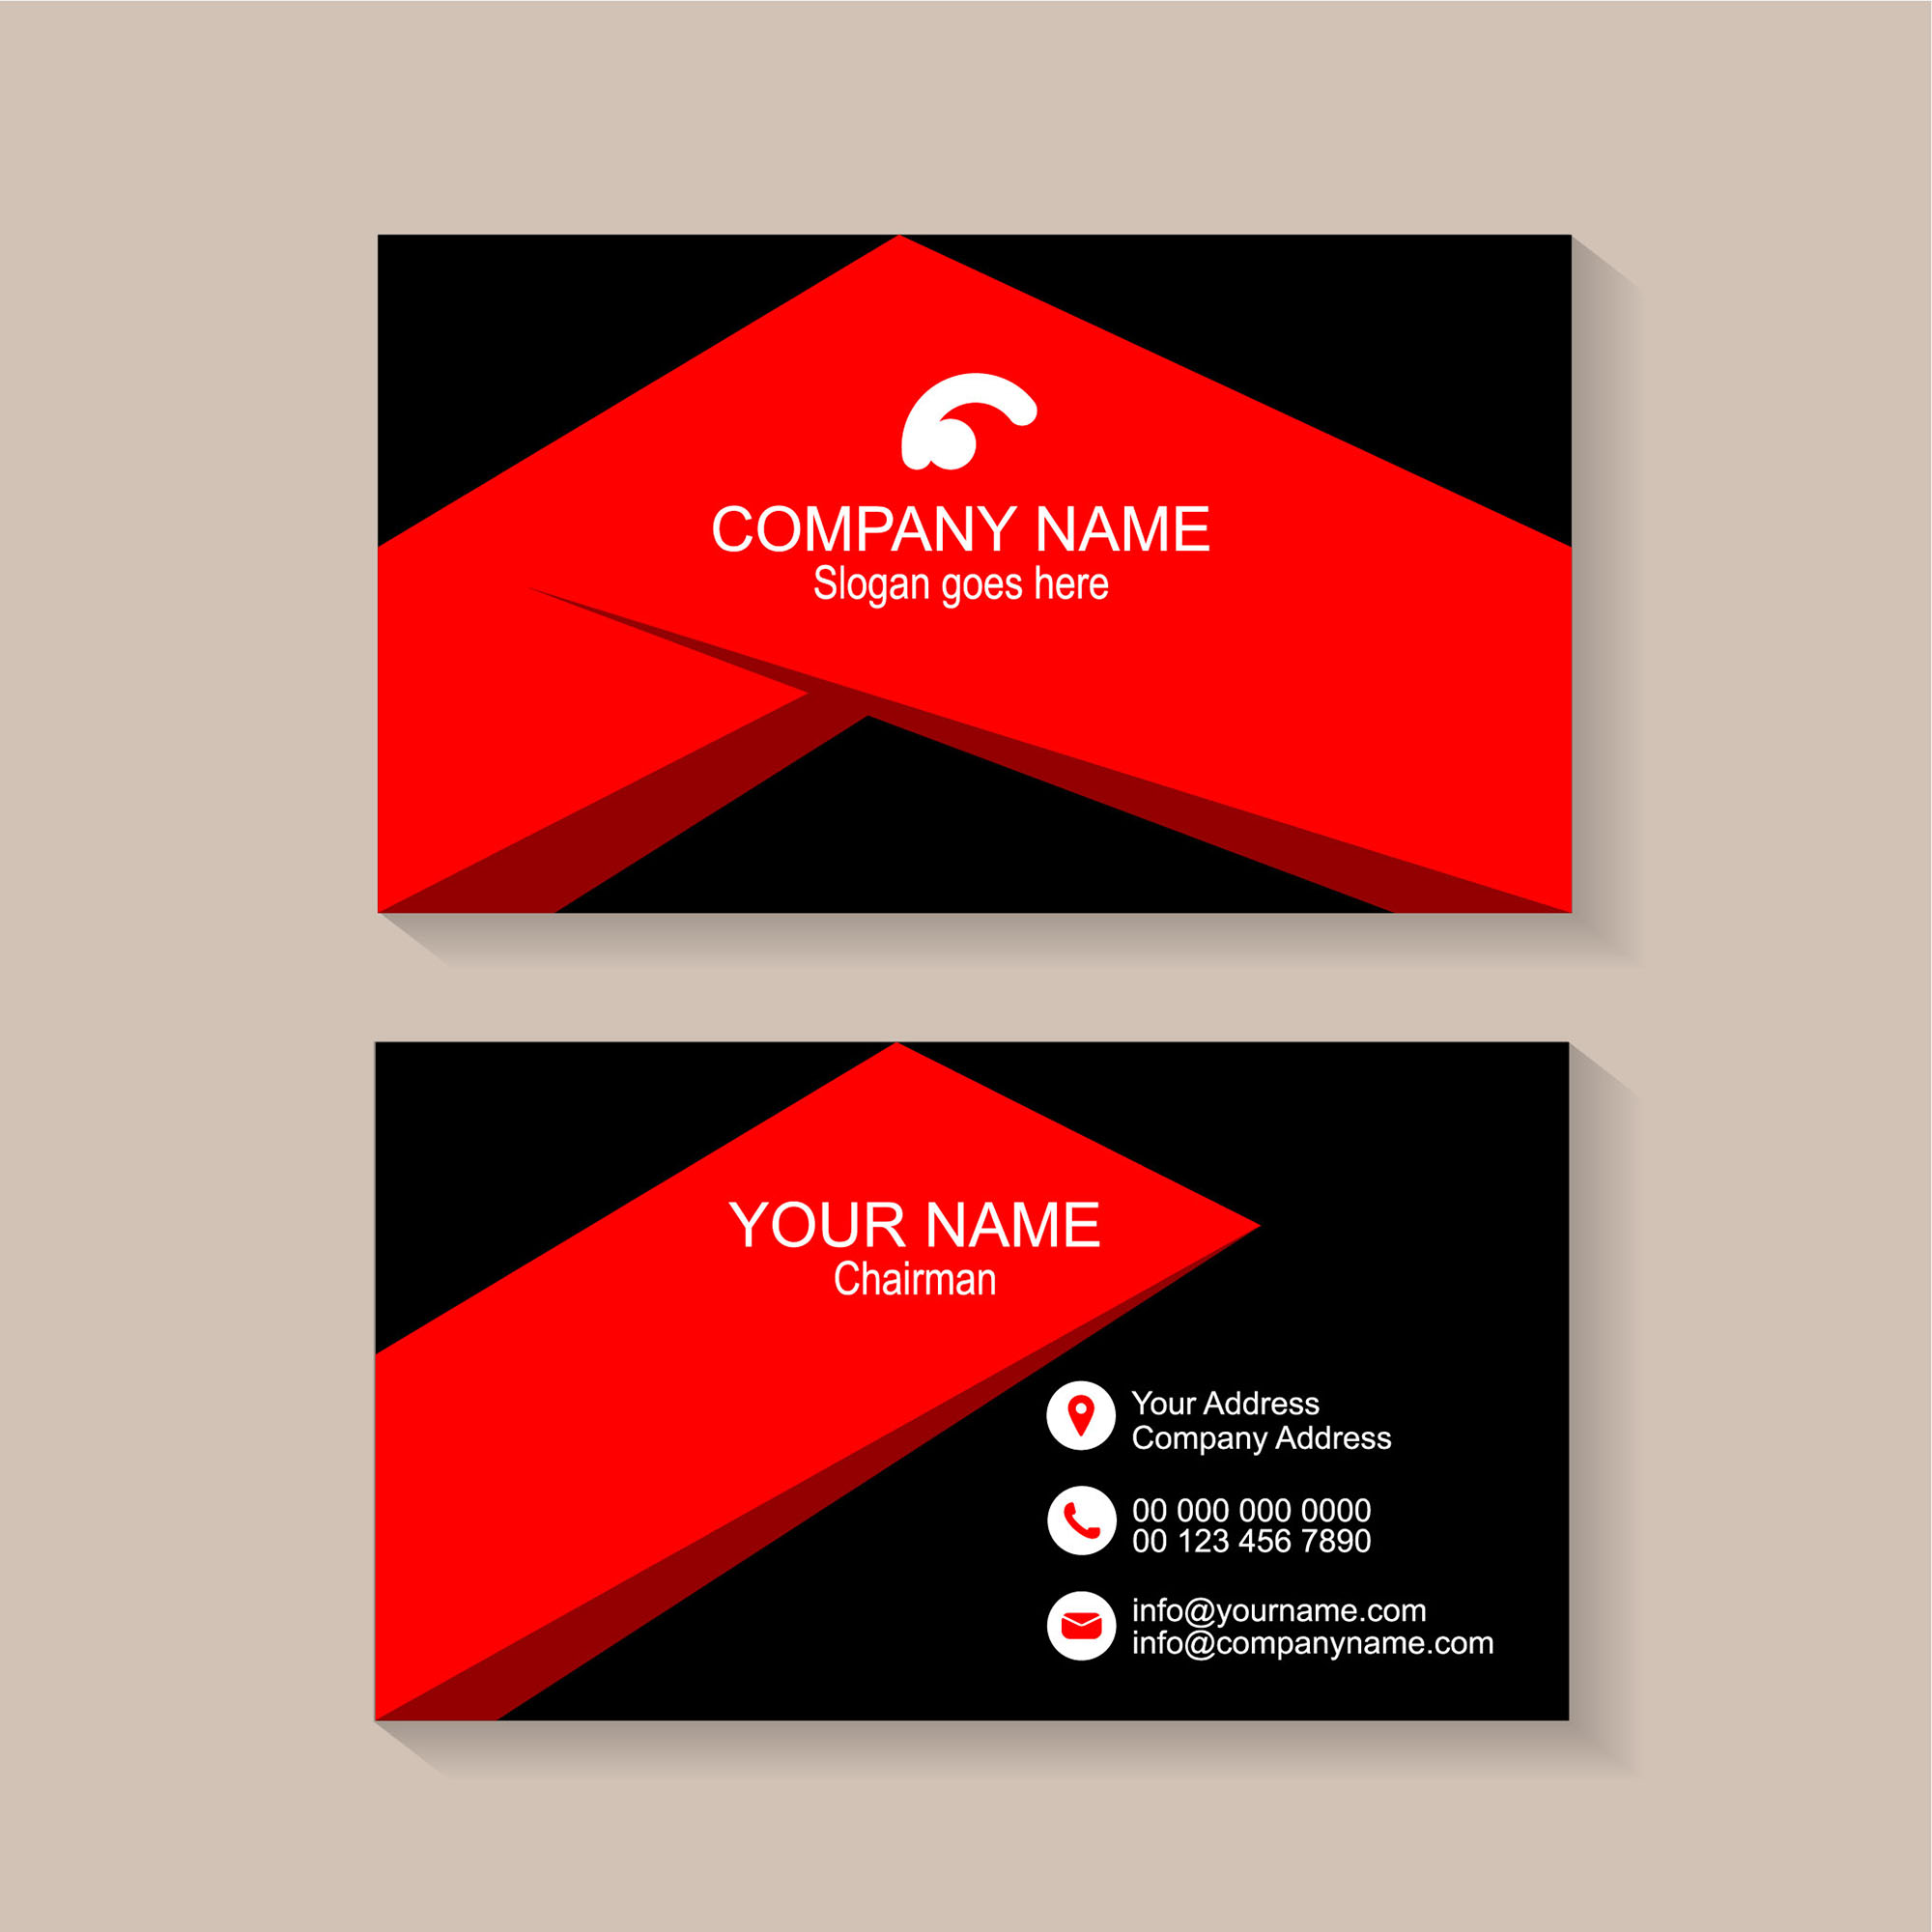 Business card template design free download wisxi business card business cards business card design business card template design templates fbccfo Gallery